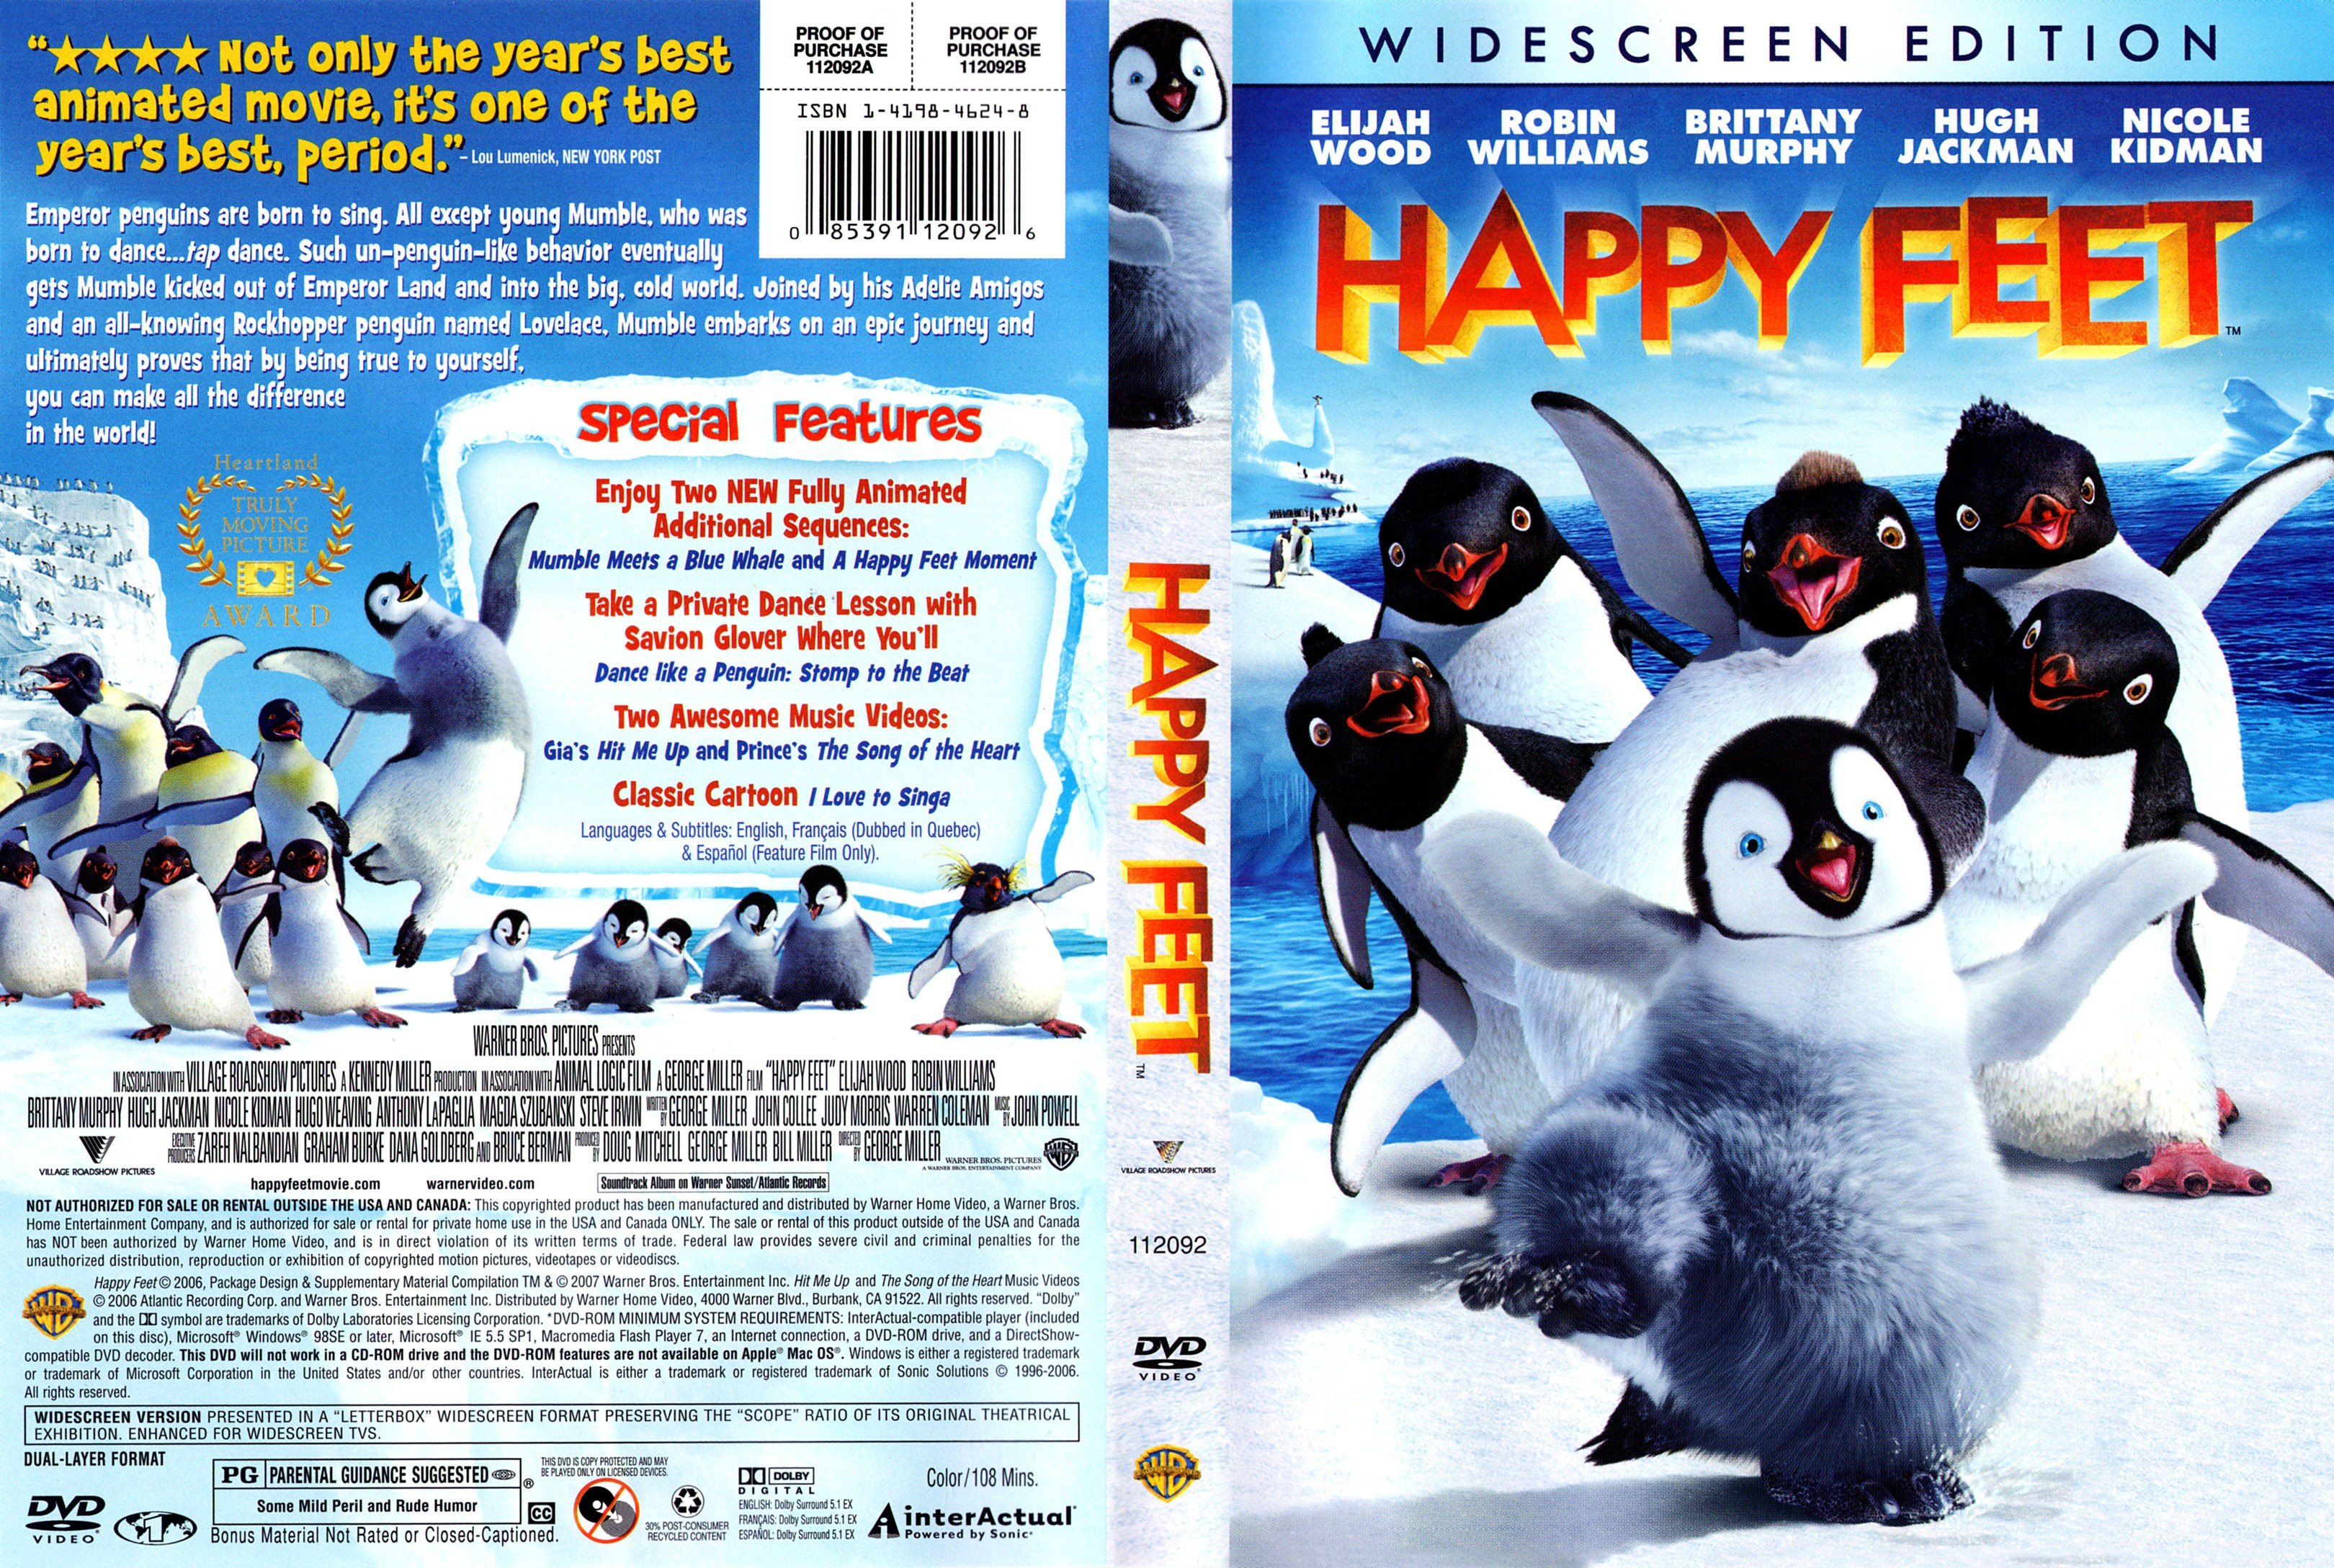 Happy Feet 2006 R1 Dvd Cover Dvd Covers And Labels